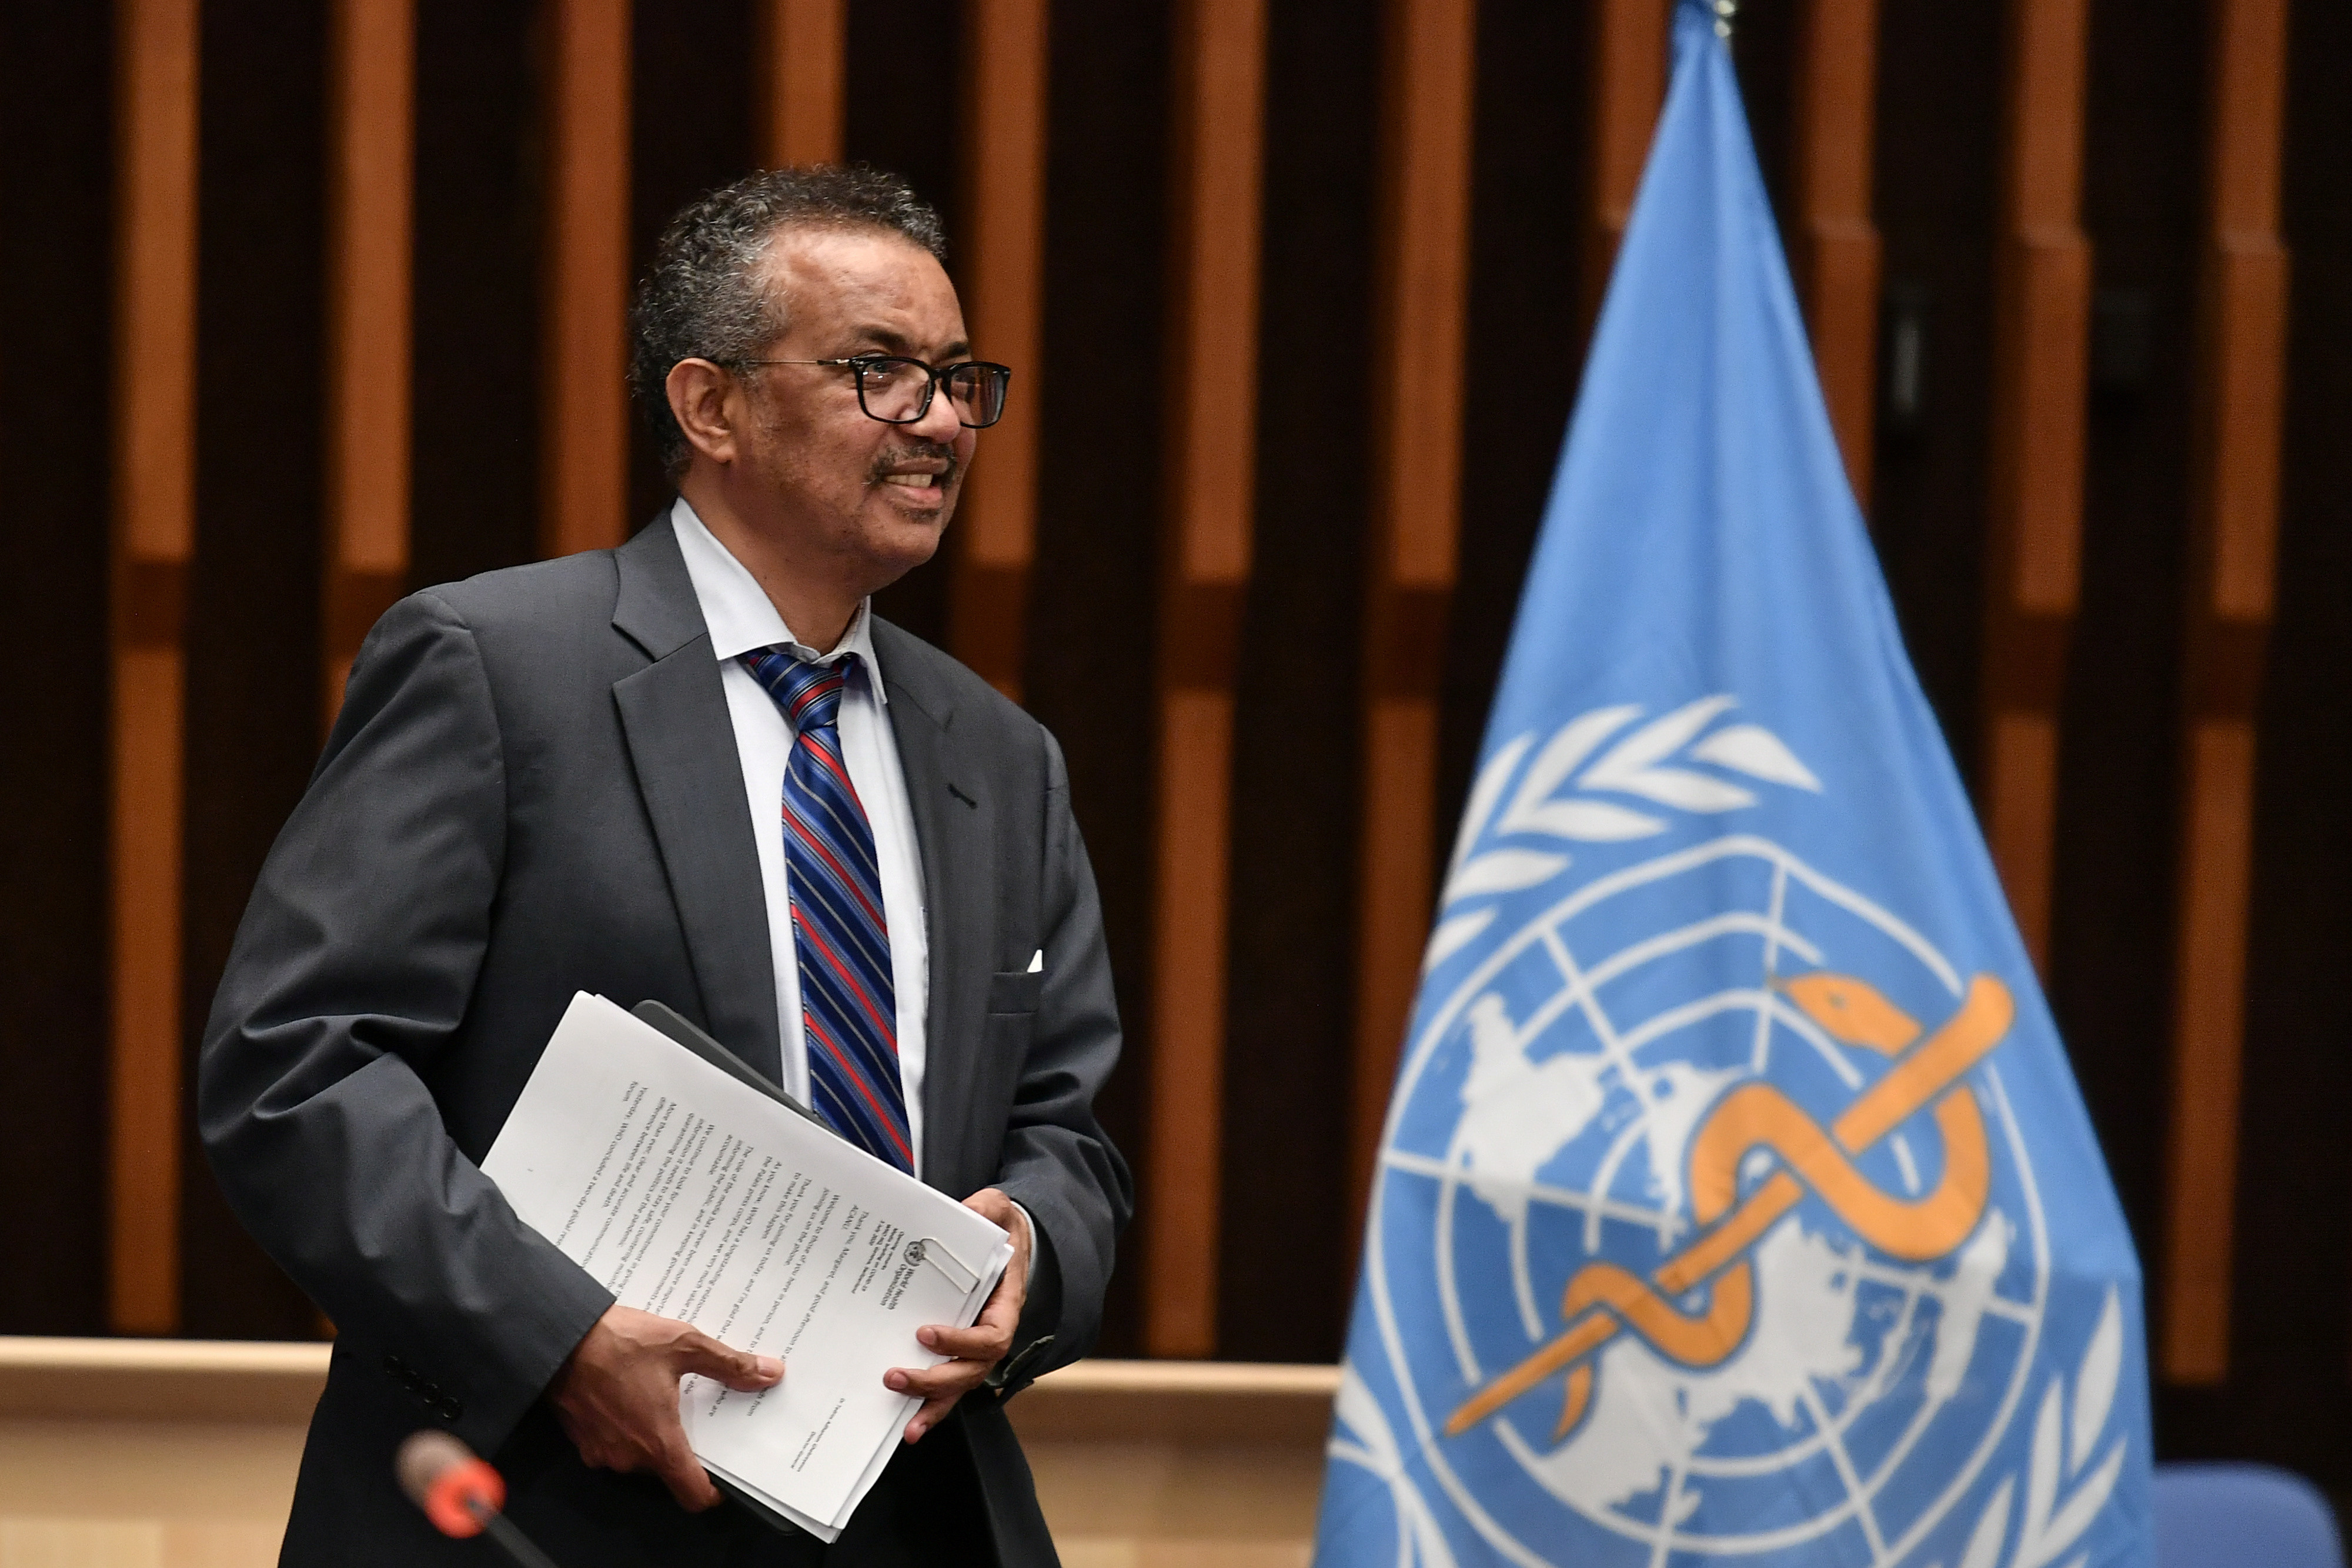 World Health Organization (WHO) Director-General Tedros Adhanom Ghebreyesus arrives at a news conference organized by Geneva Association of United Nations Correspondents (ACANU) amid the COVID-19 outbreak, caused by the novel coronavirus, at the WHO headquarters in Geneva Switzerland July 3, 2020. Fabrice Coffrini/Pool via REUTERS - RC2TLH9YJKTZ